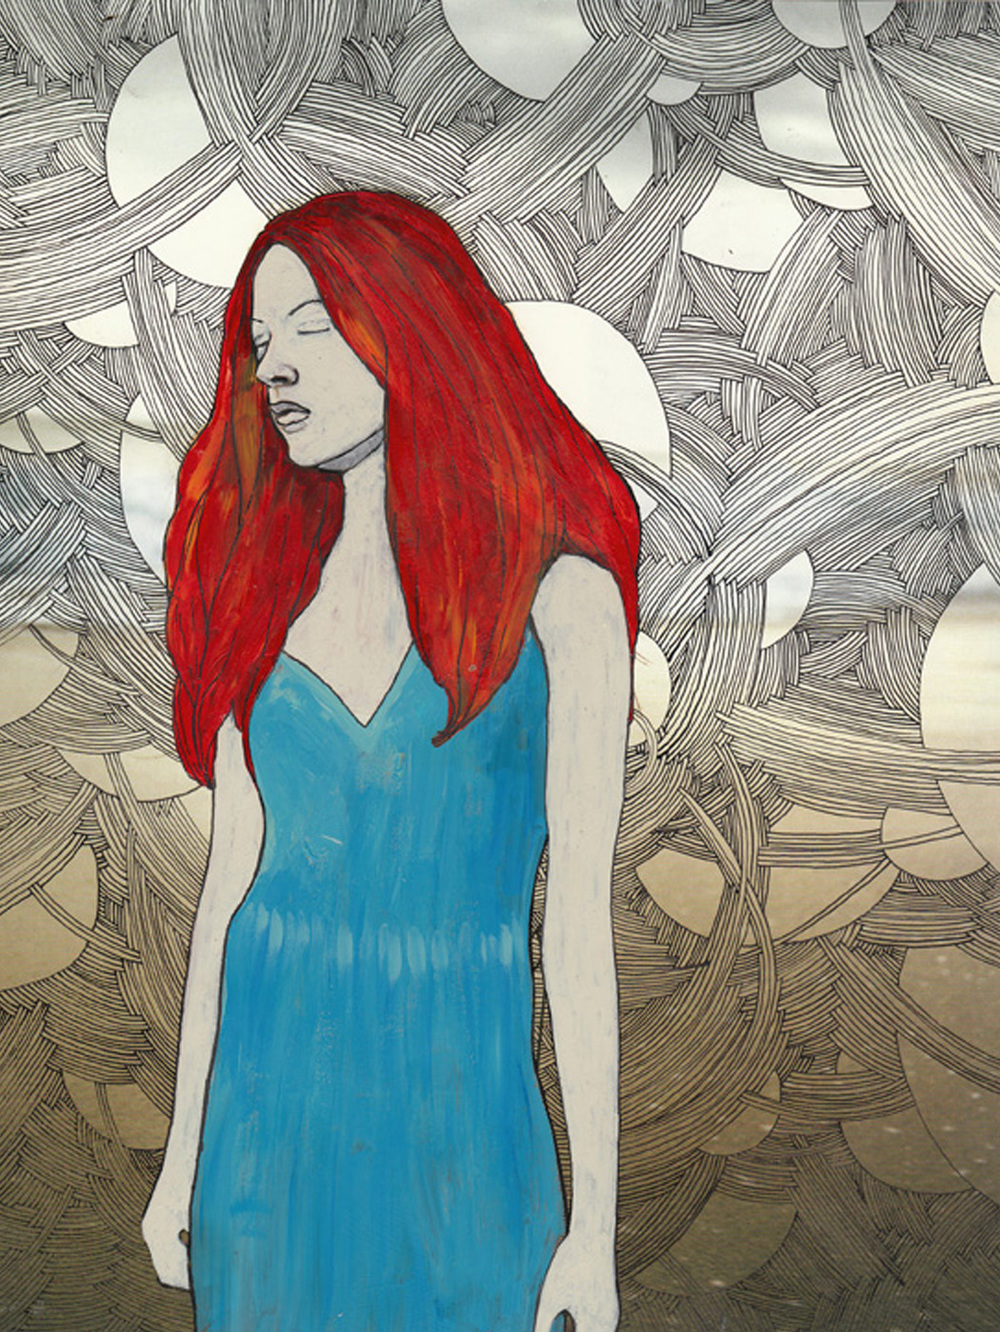 "Blue Dress, 8.5"" X 10"", ink and acrylic on glossy paper, 2008"